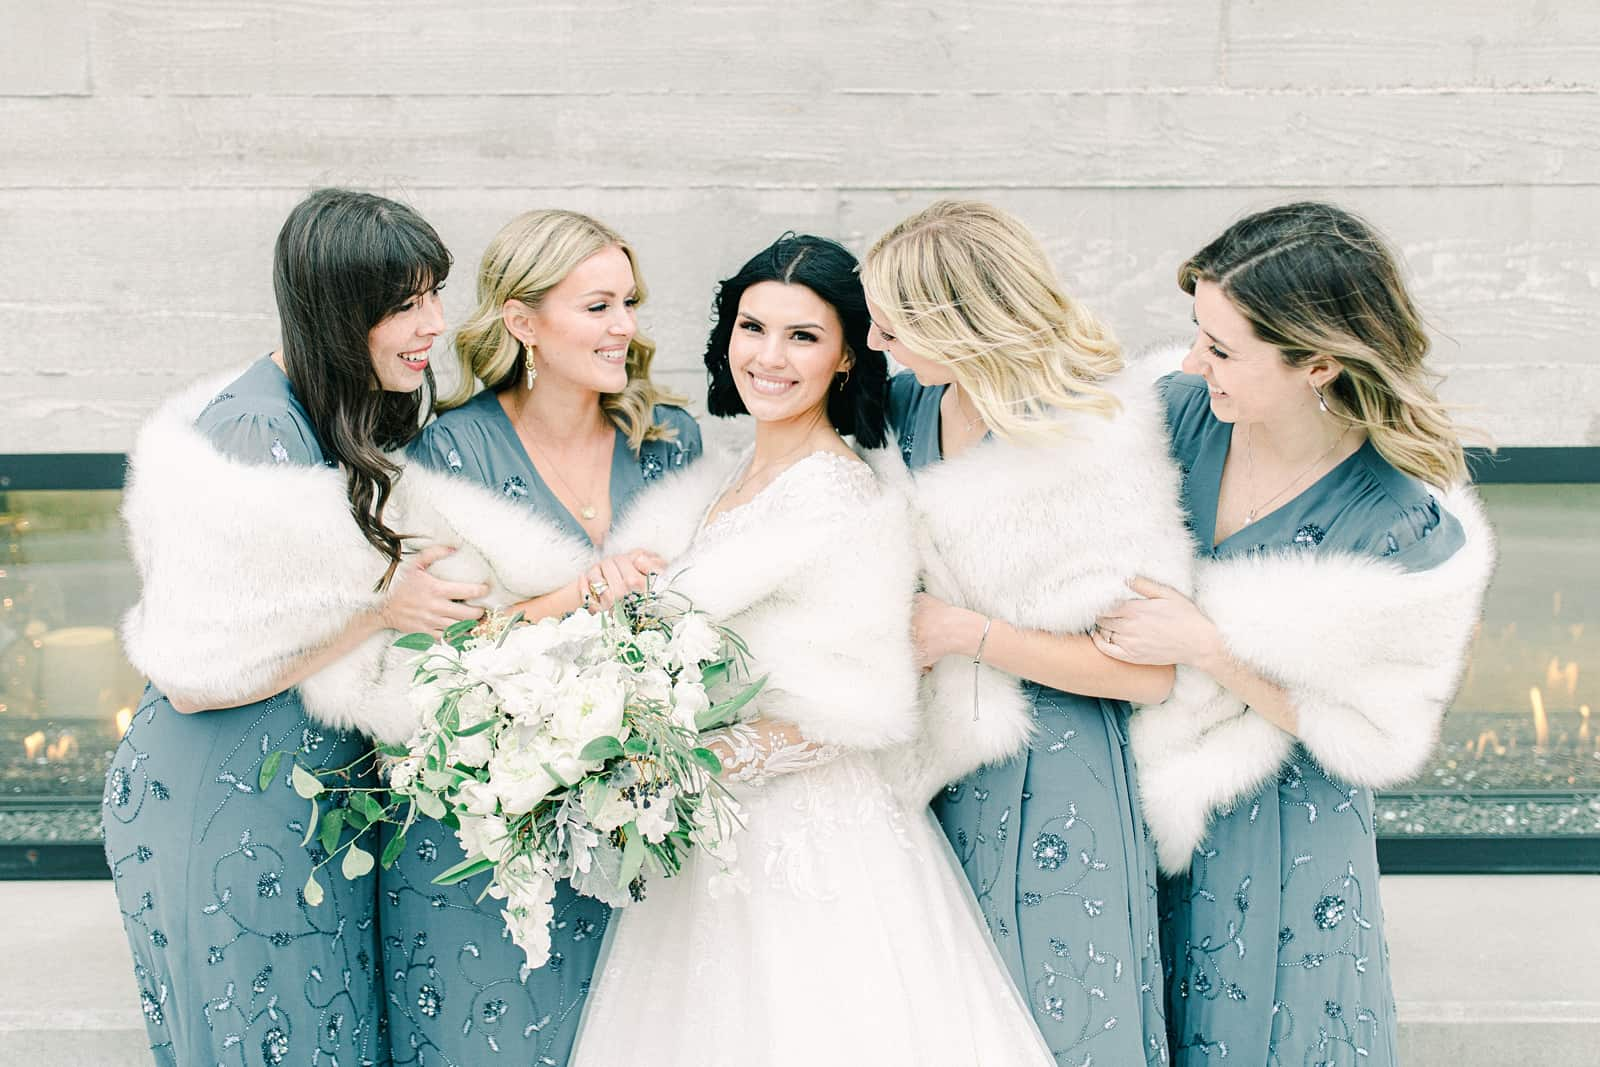 Winter wedding bride with bridesmaids, blue beaded bridesmaids dresses with white fur stoles, white flower bouquets